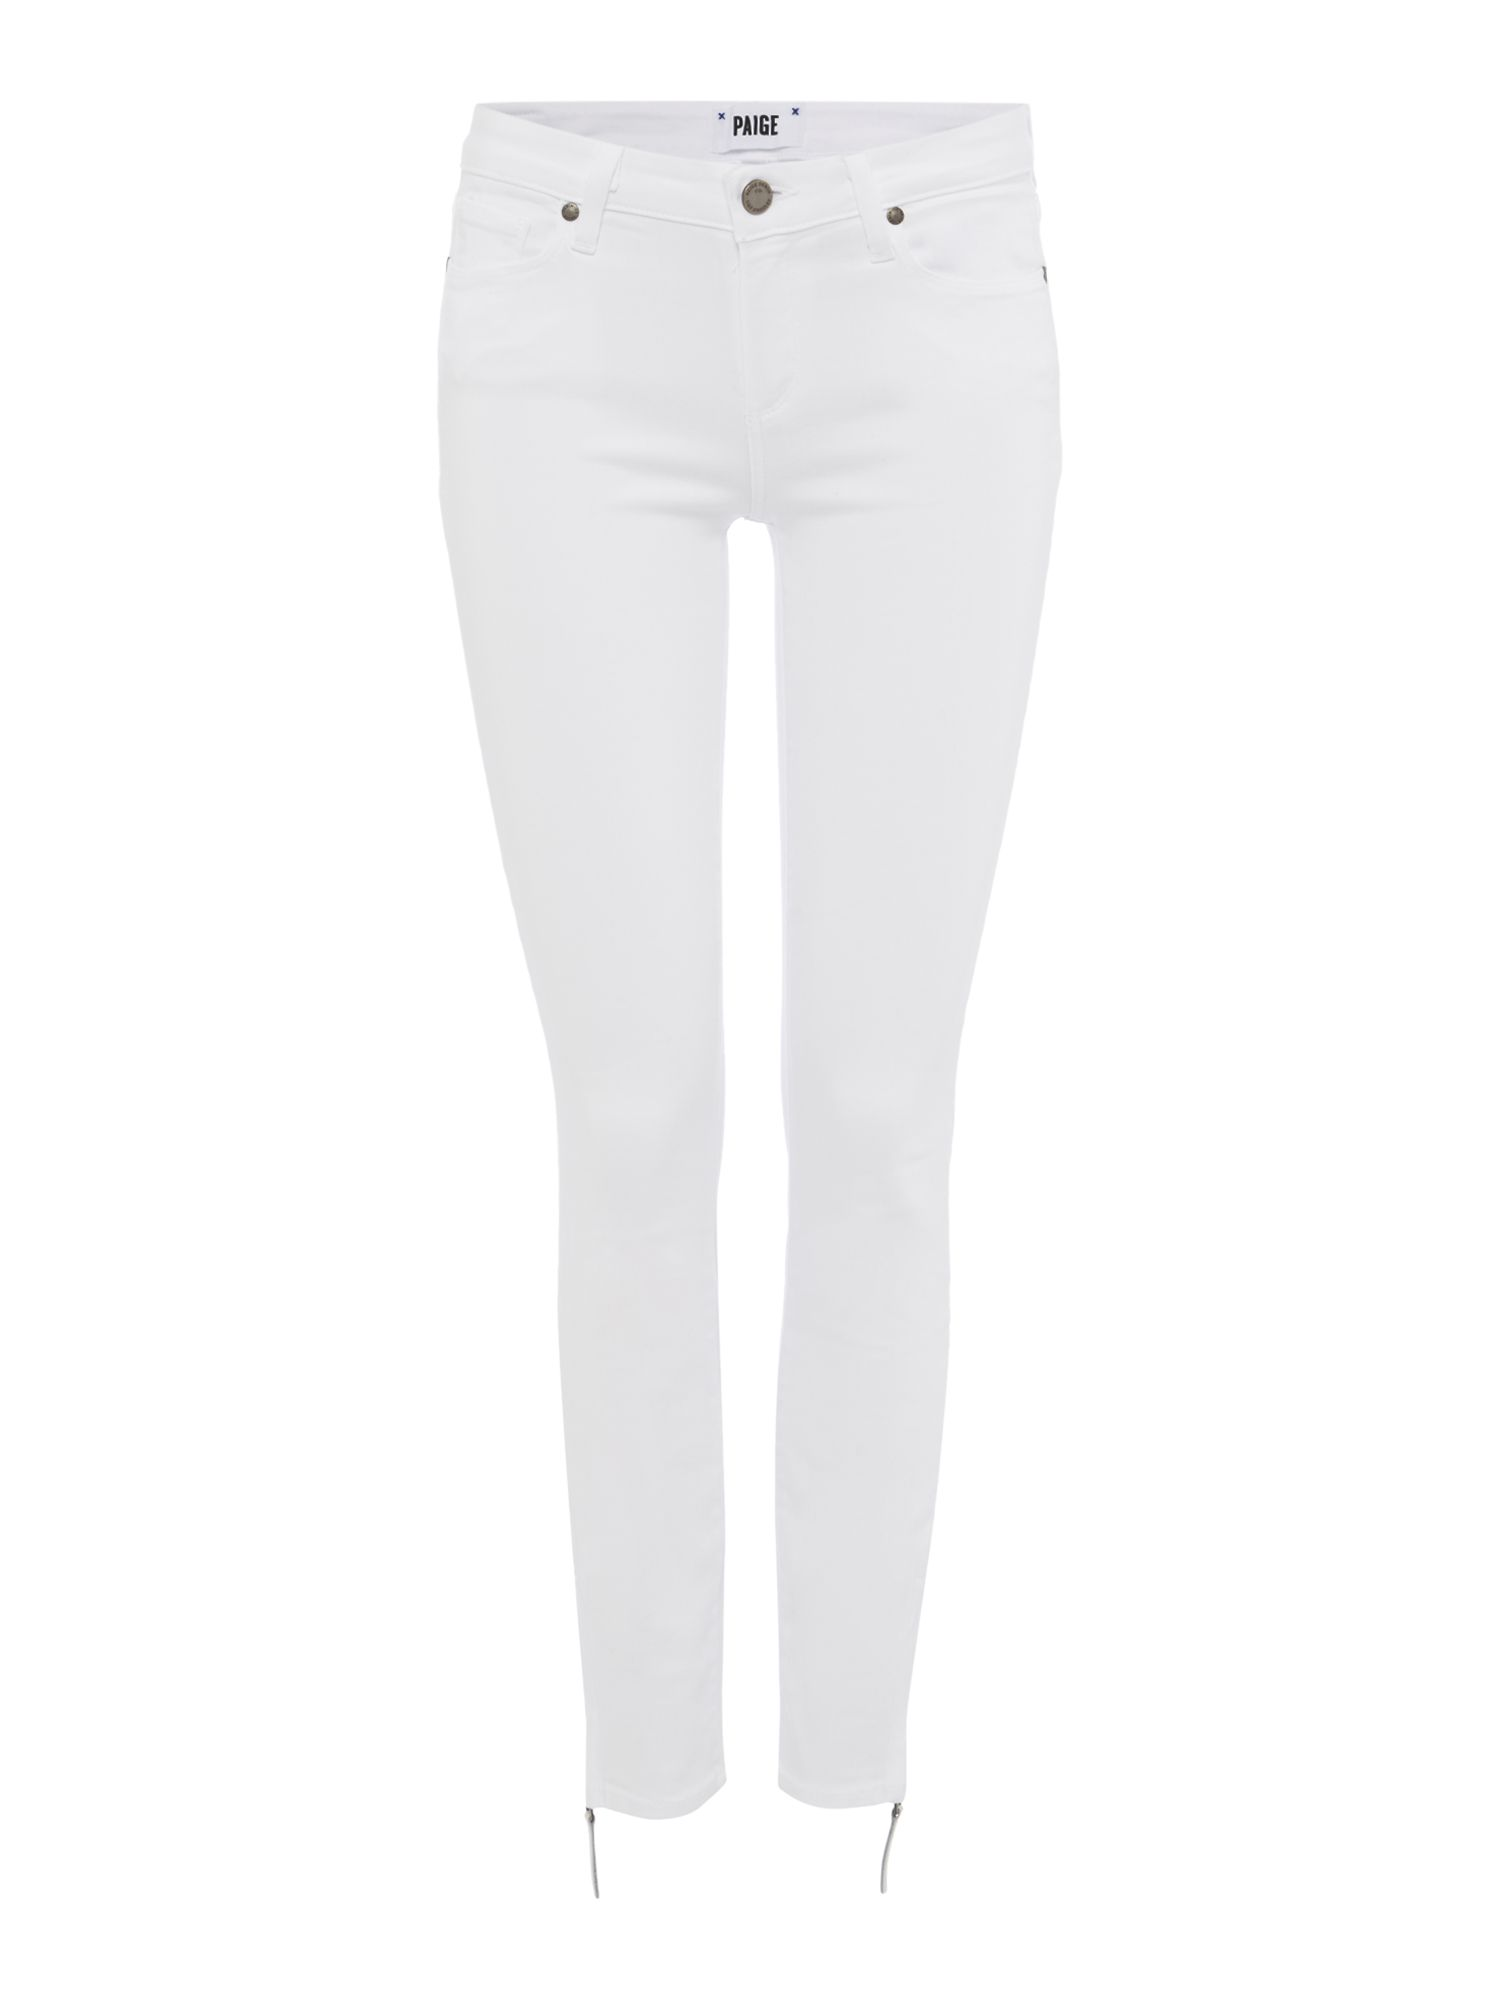 Verdugo Ankle Jean In Ultra White, White